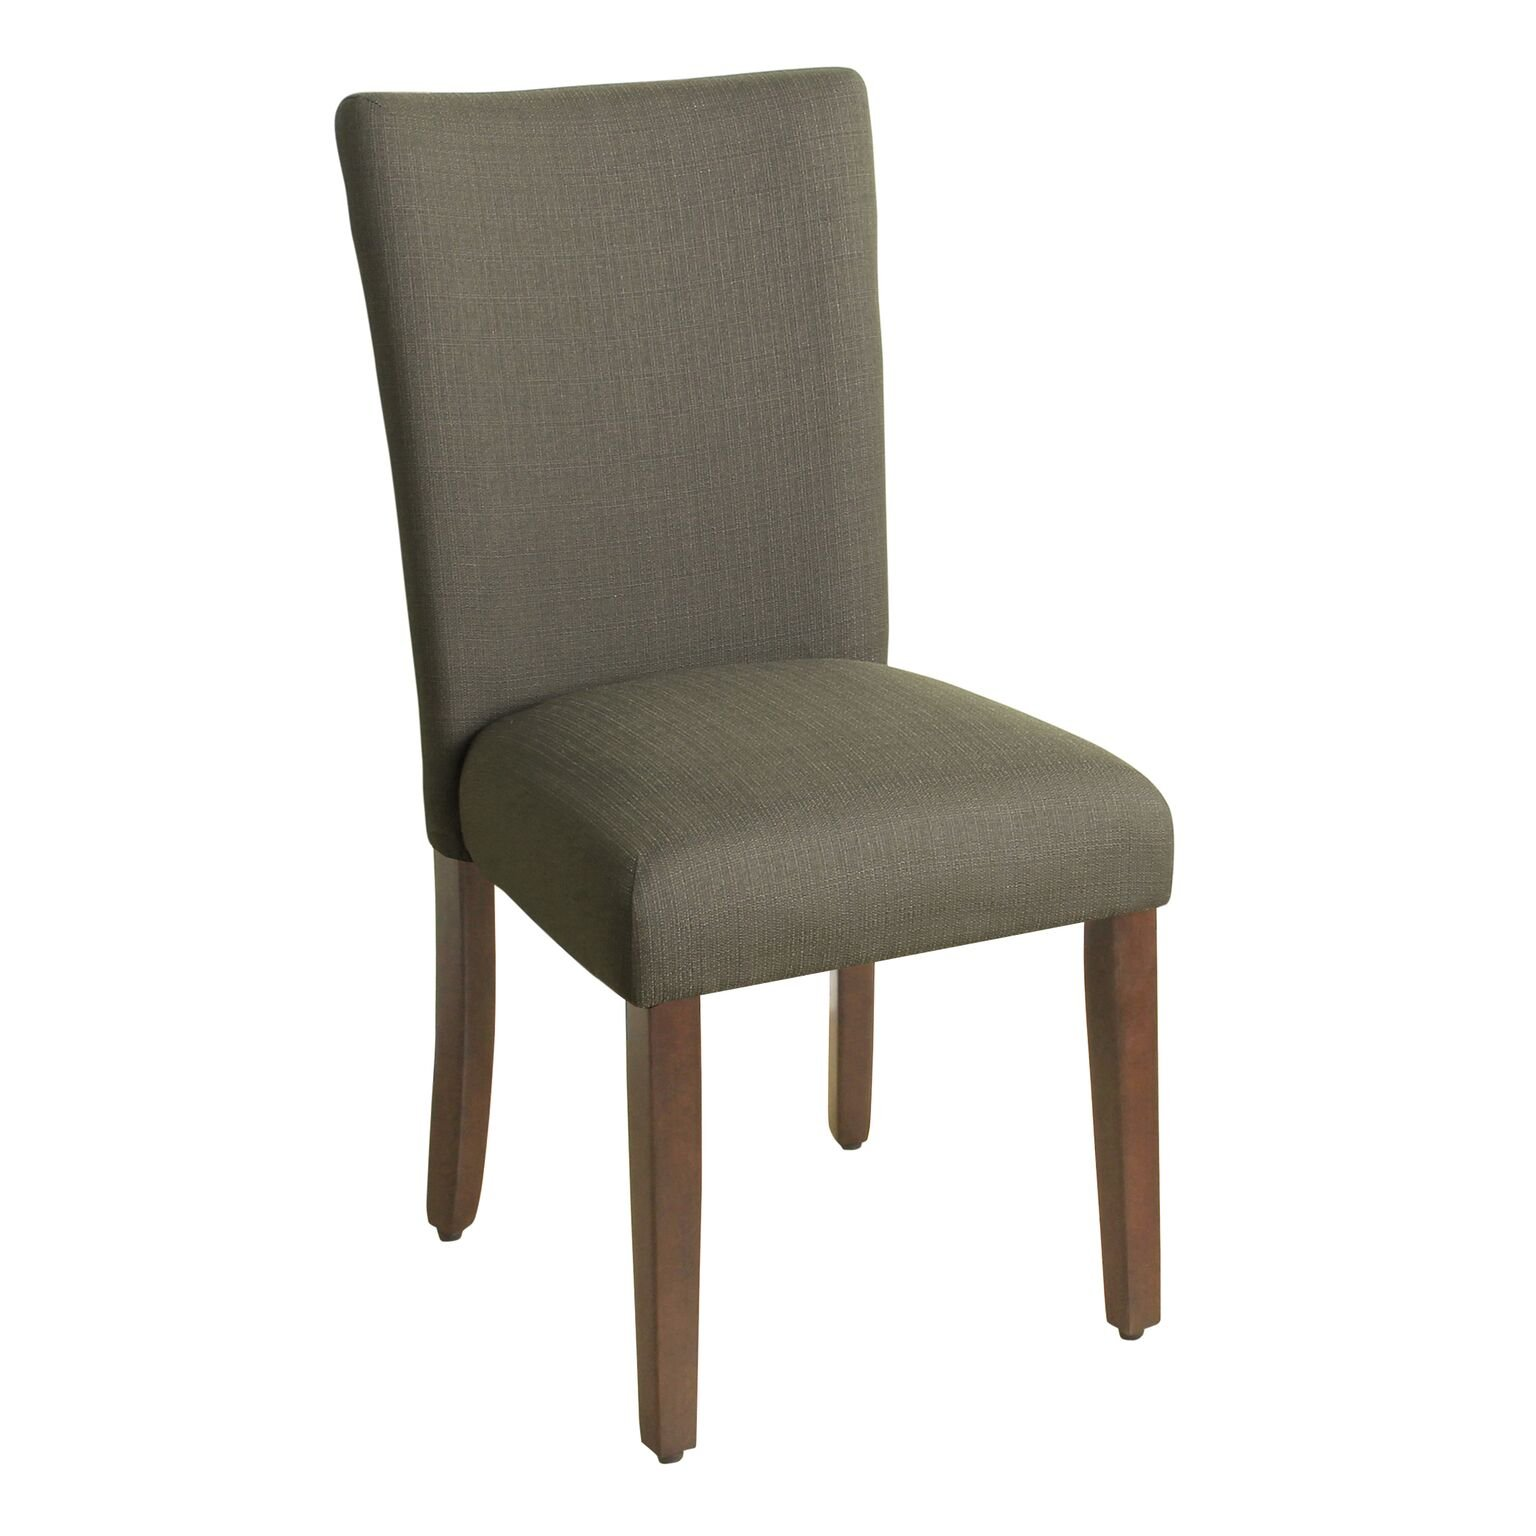 HomePop Parsons Classic Upholstered Accent Dining Chair, Single Pack, Brown